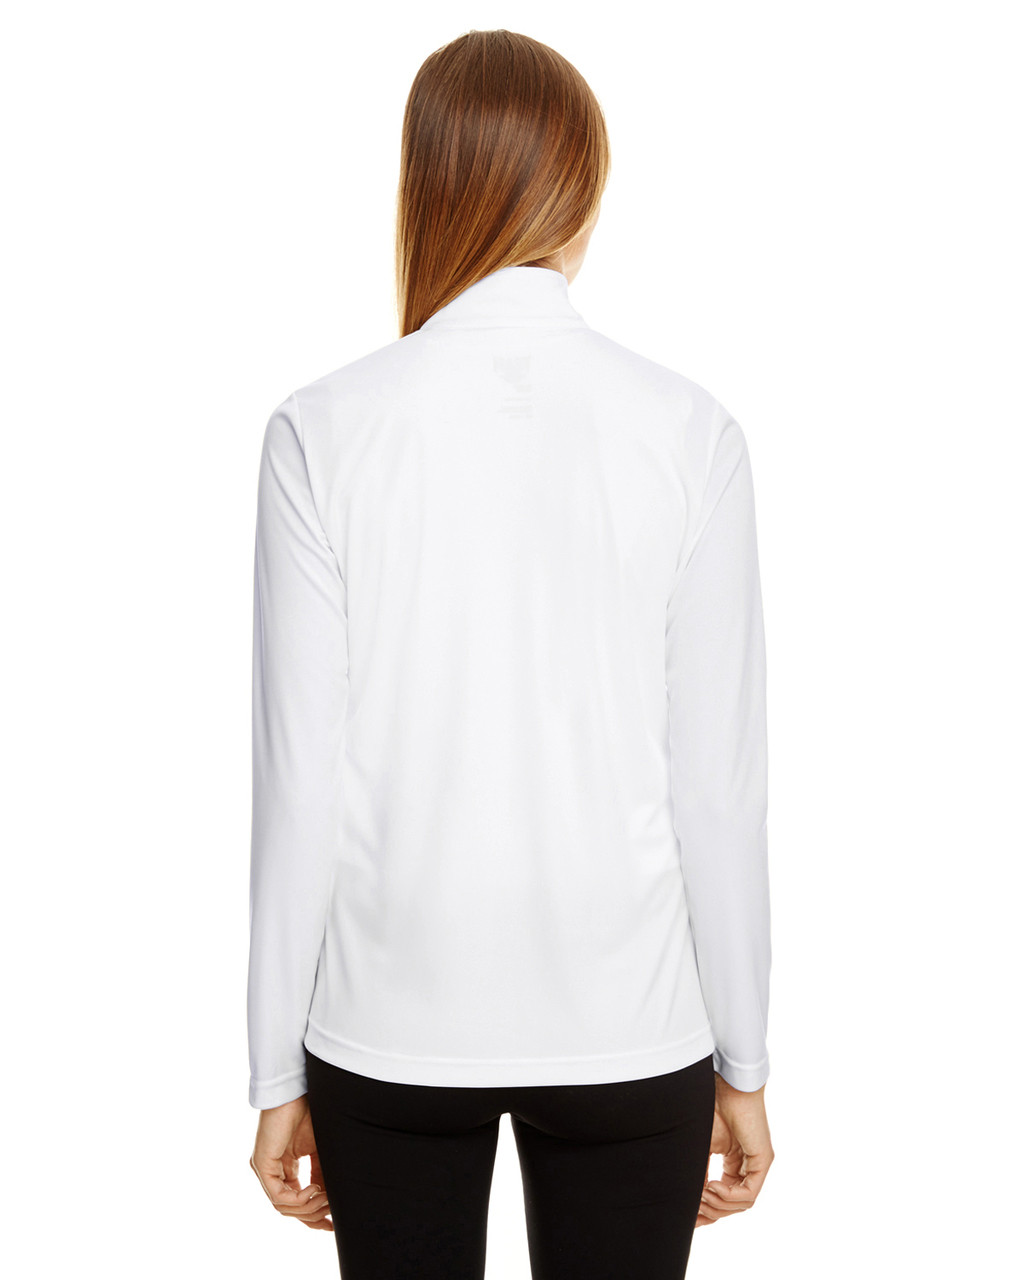 White - TT31W Team 365 Ladies' Zone Performance Quarter-Zip Shirt